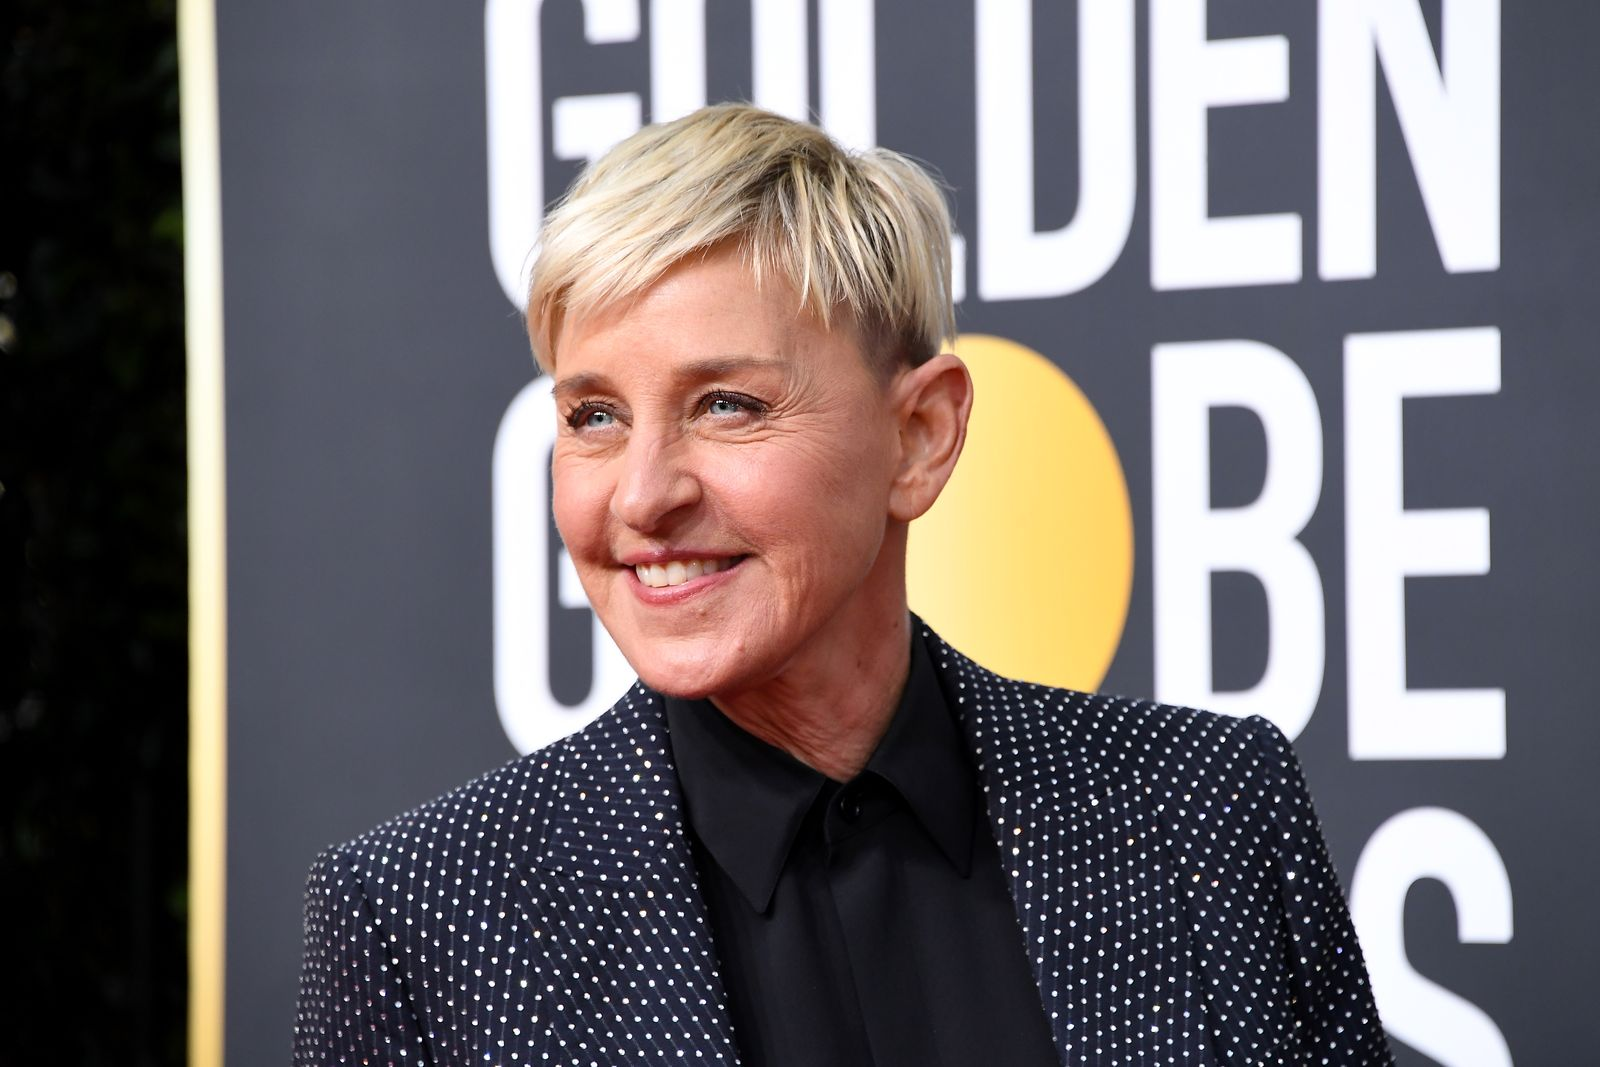 Ellen DeGeneres attending the 2020 Golden Globes/Photo:Getty Images